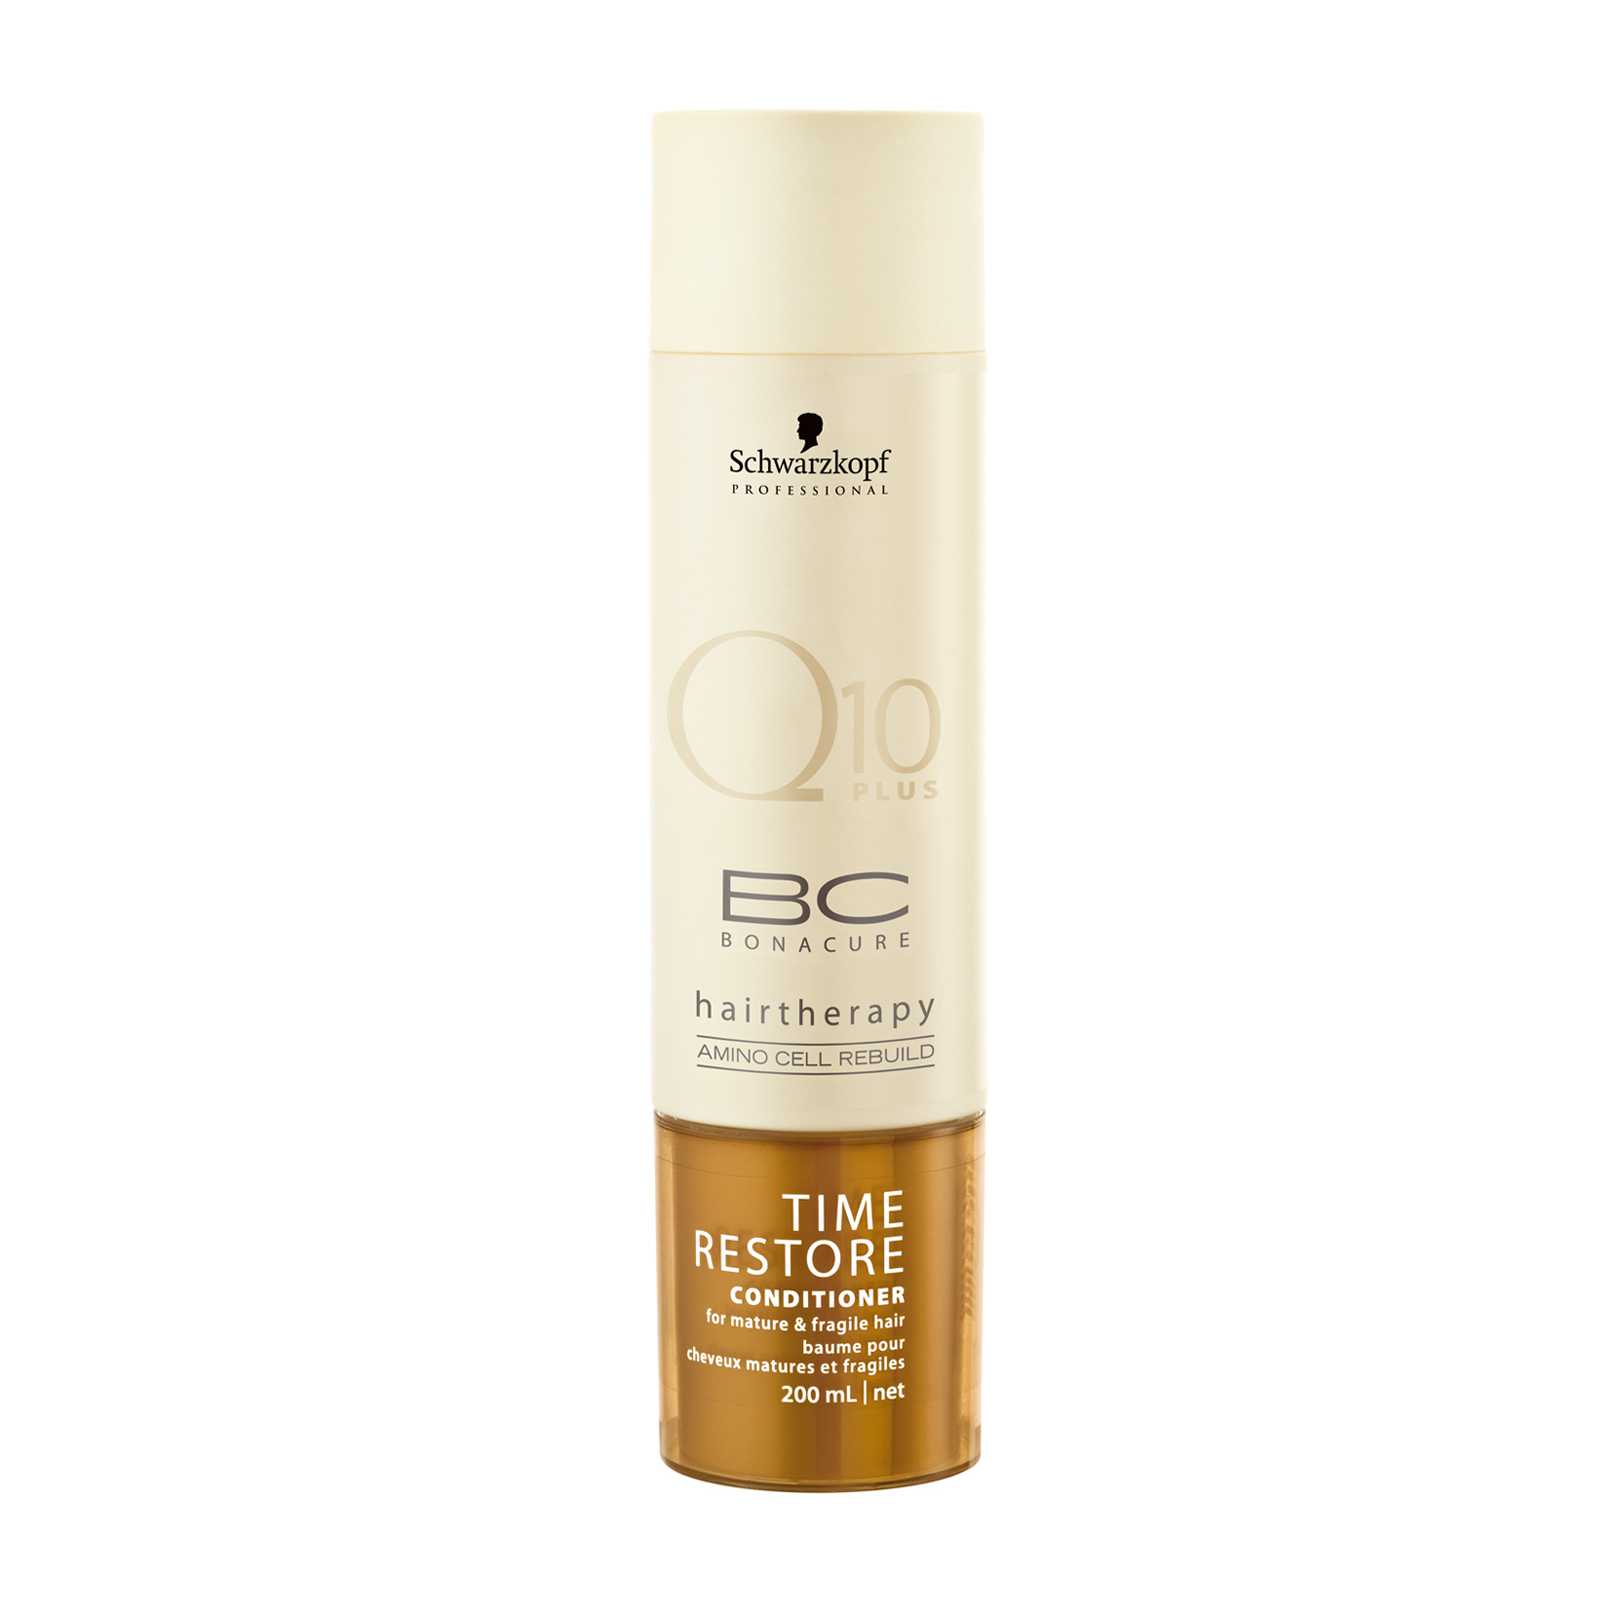 Schwarzkopf Professional BC Bonacure Time Restore Q10 Plus Conditioner Возраждающий кондиционер (200 ml) 1451440